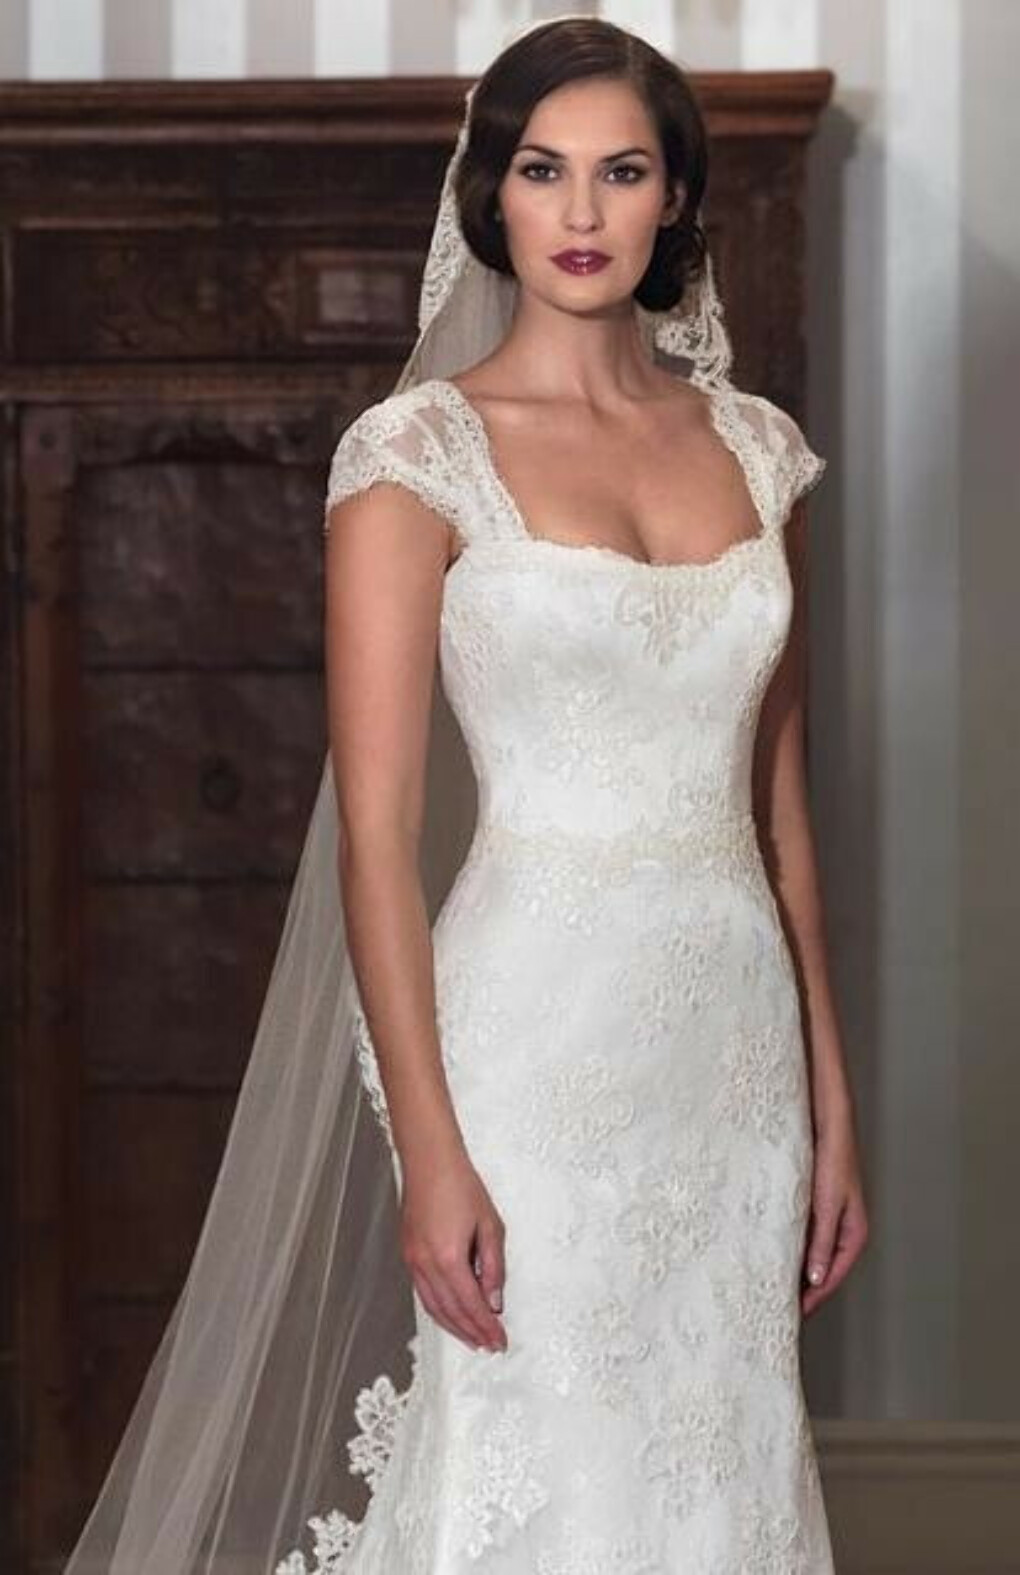 Lucia by Suzanne Neville Wedding Dress